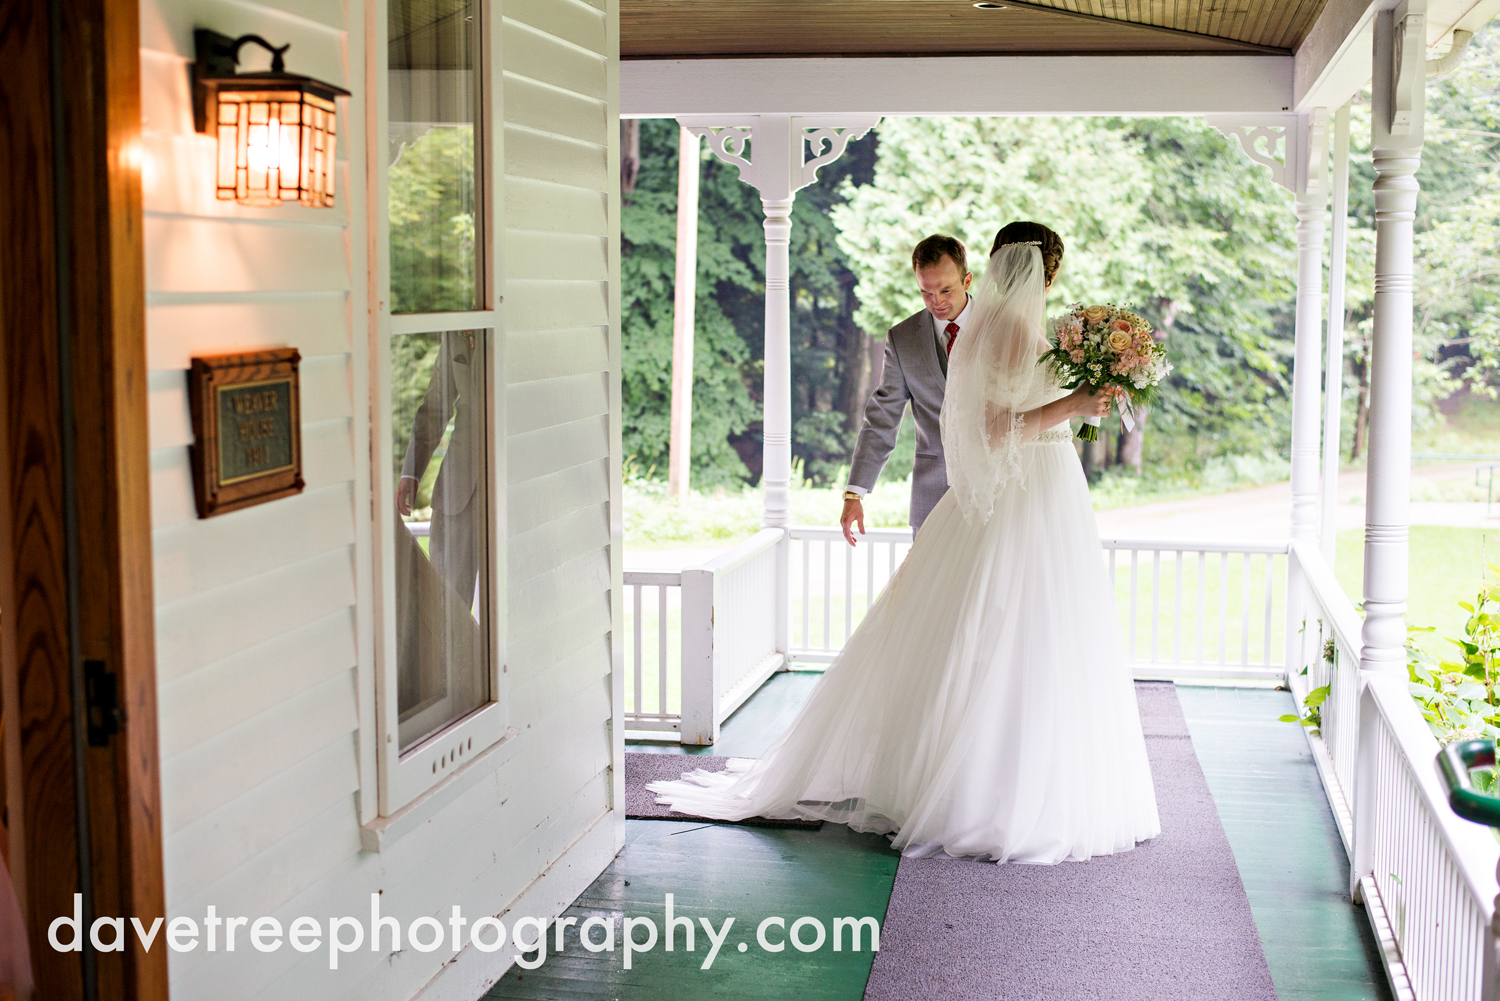 grand_haven_wedding_photographer_weaver_house_wedding_177.jpg